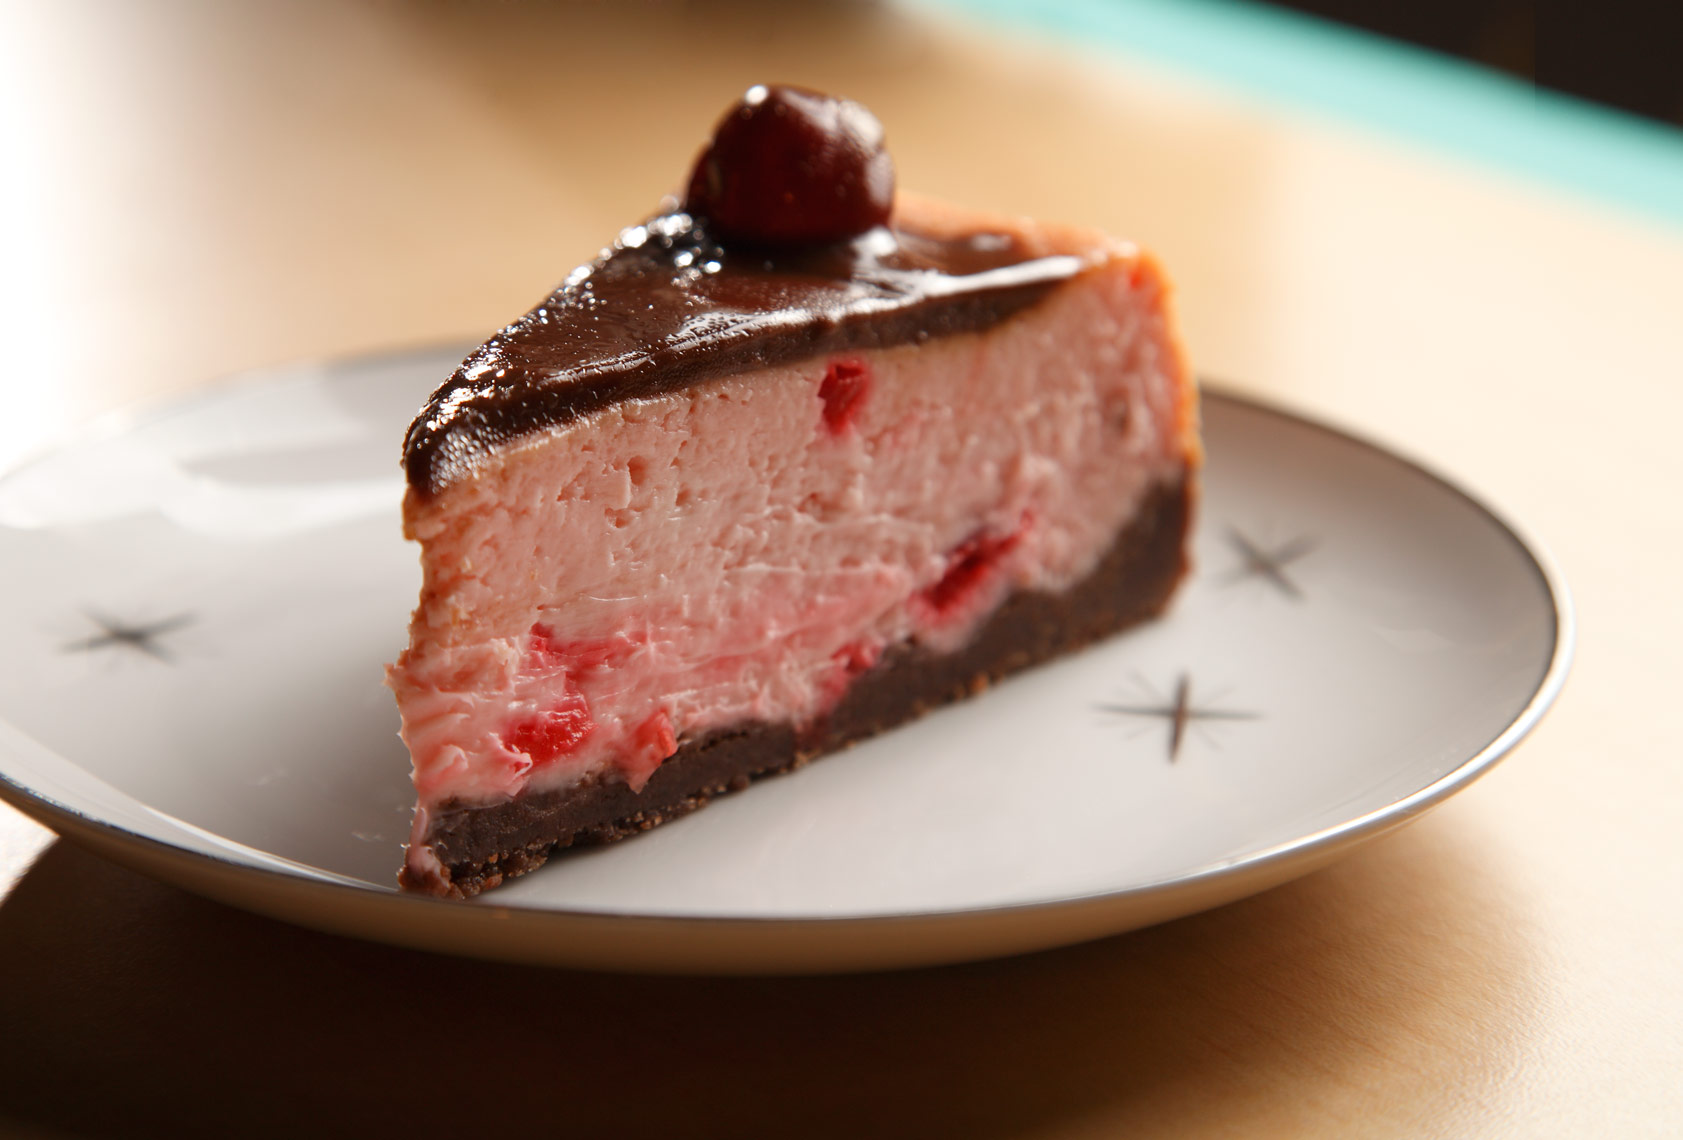 15-Cherry_Chocolate_Cheesecake